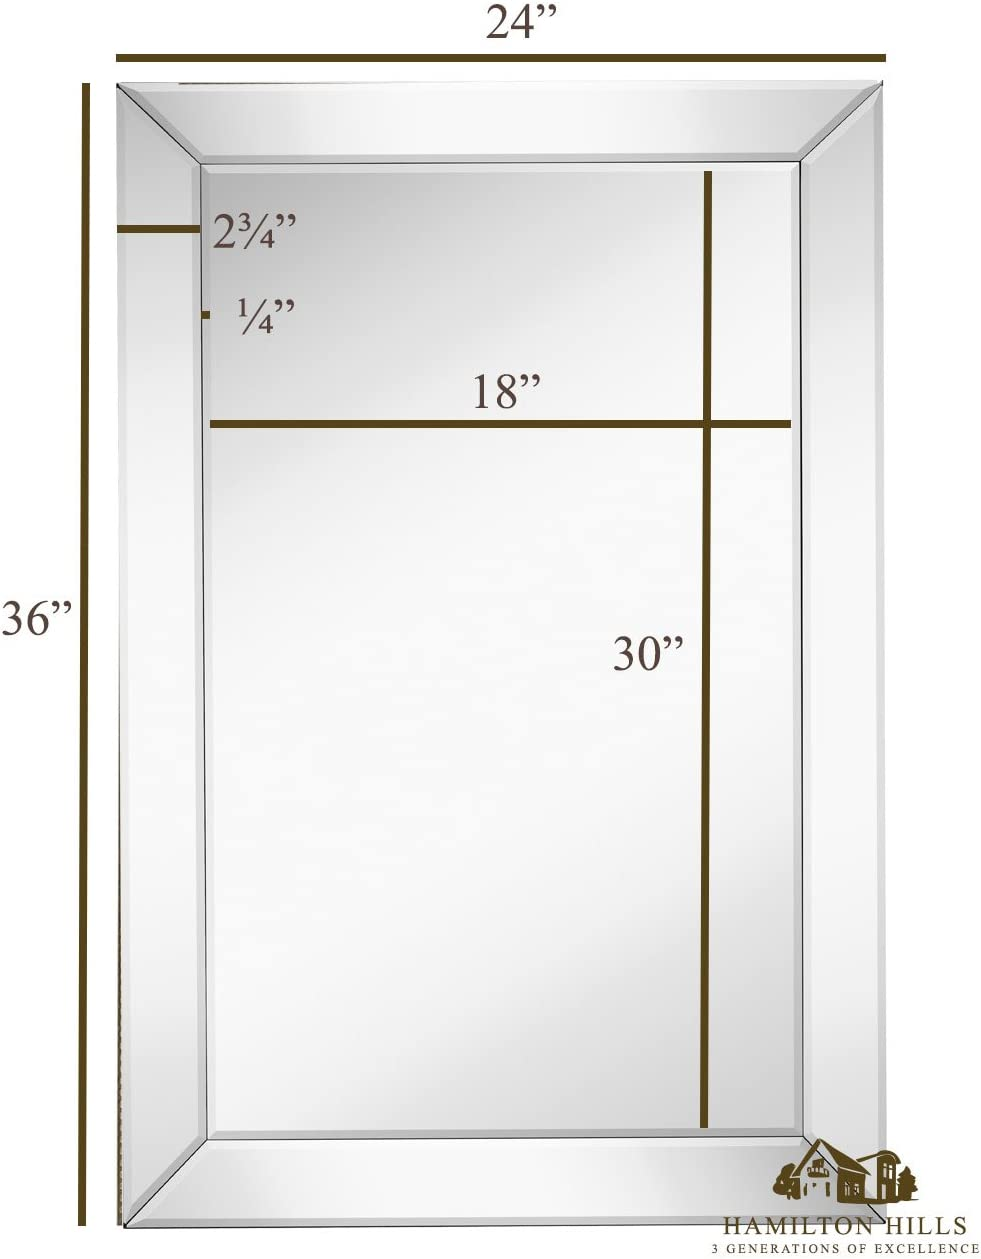 Large Framed Wall Mirror with Angled Beveled Mirror Frame Premium Silver Backed Glass Panel Vanity, Bedroom, or Bathroom Luxury Mirrored Rectangle Hangs Horizontal or Vertical 24 x 36